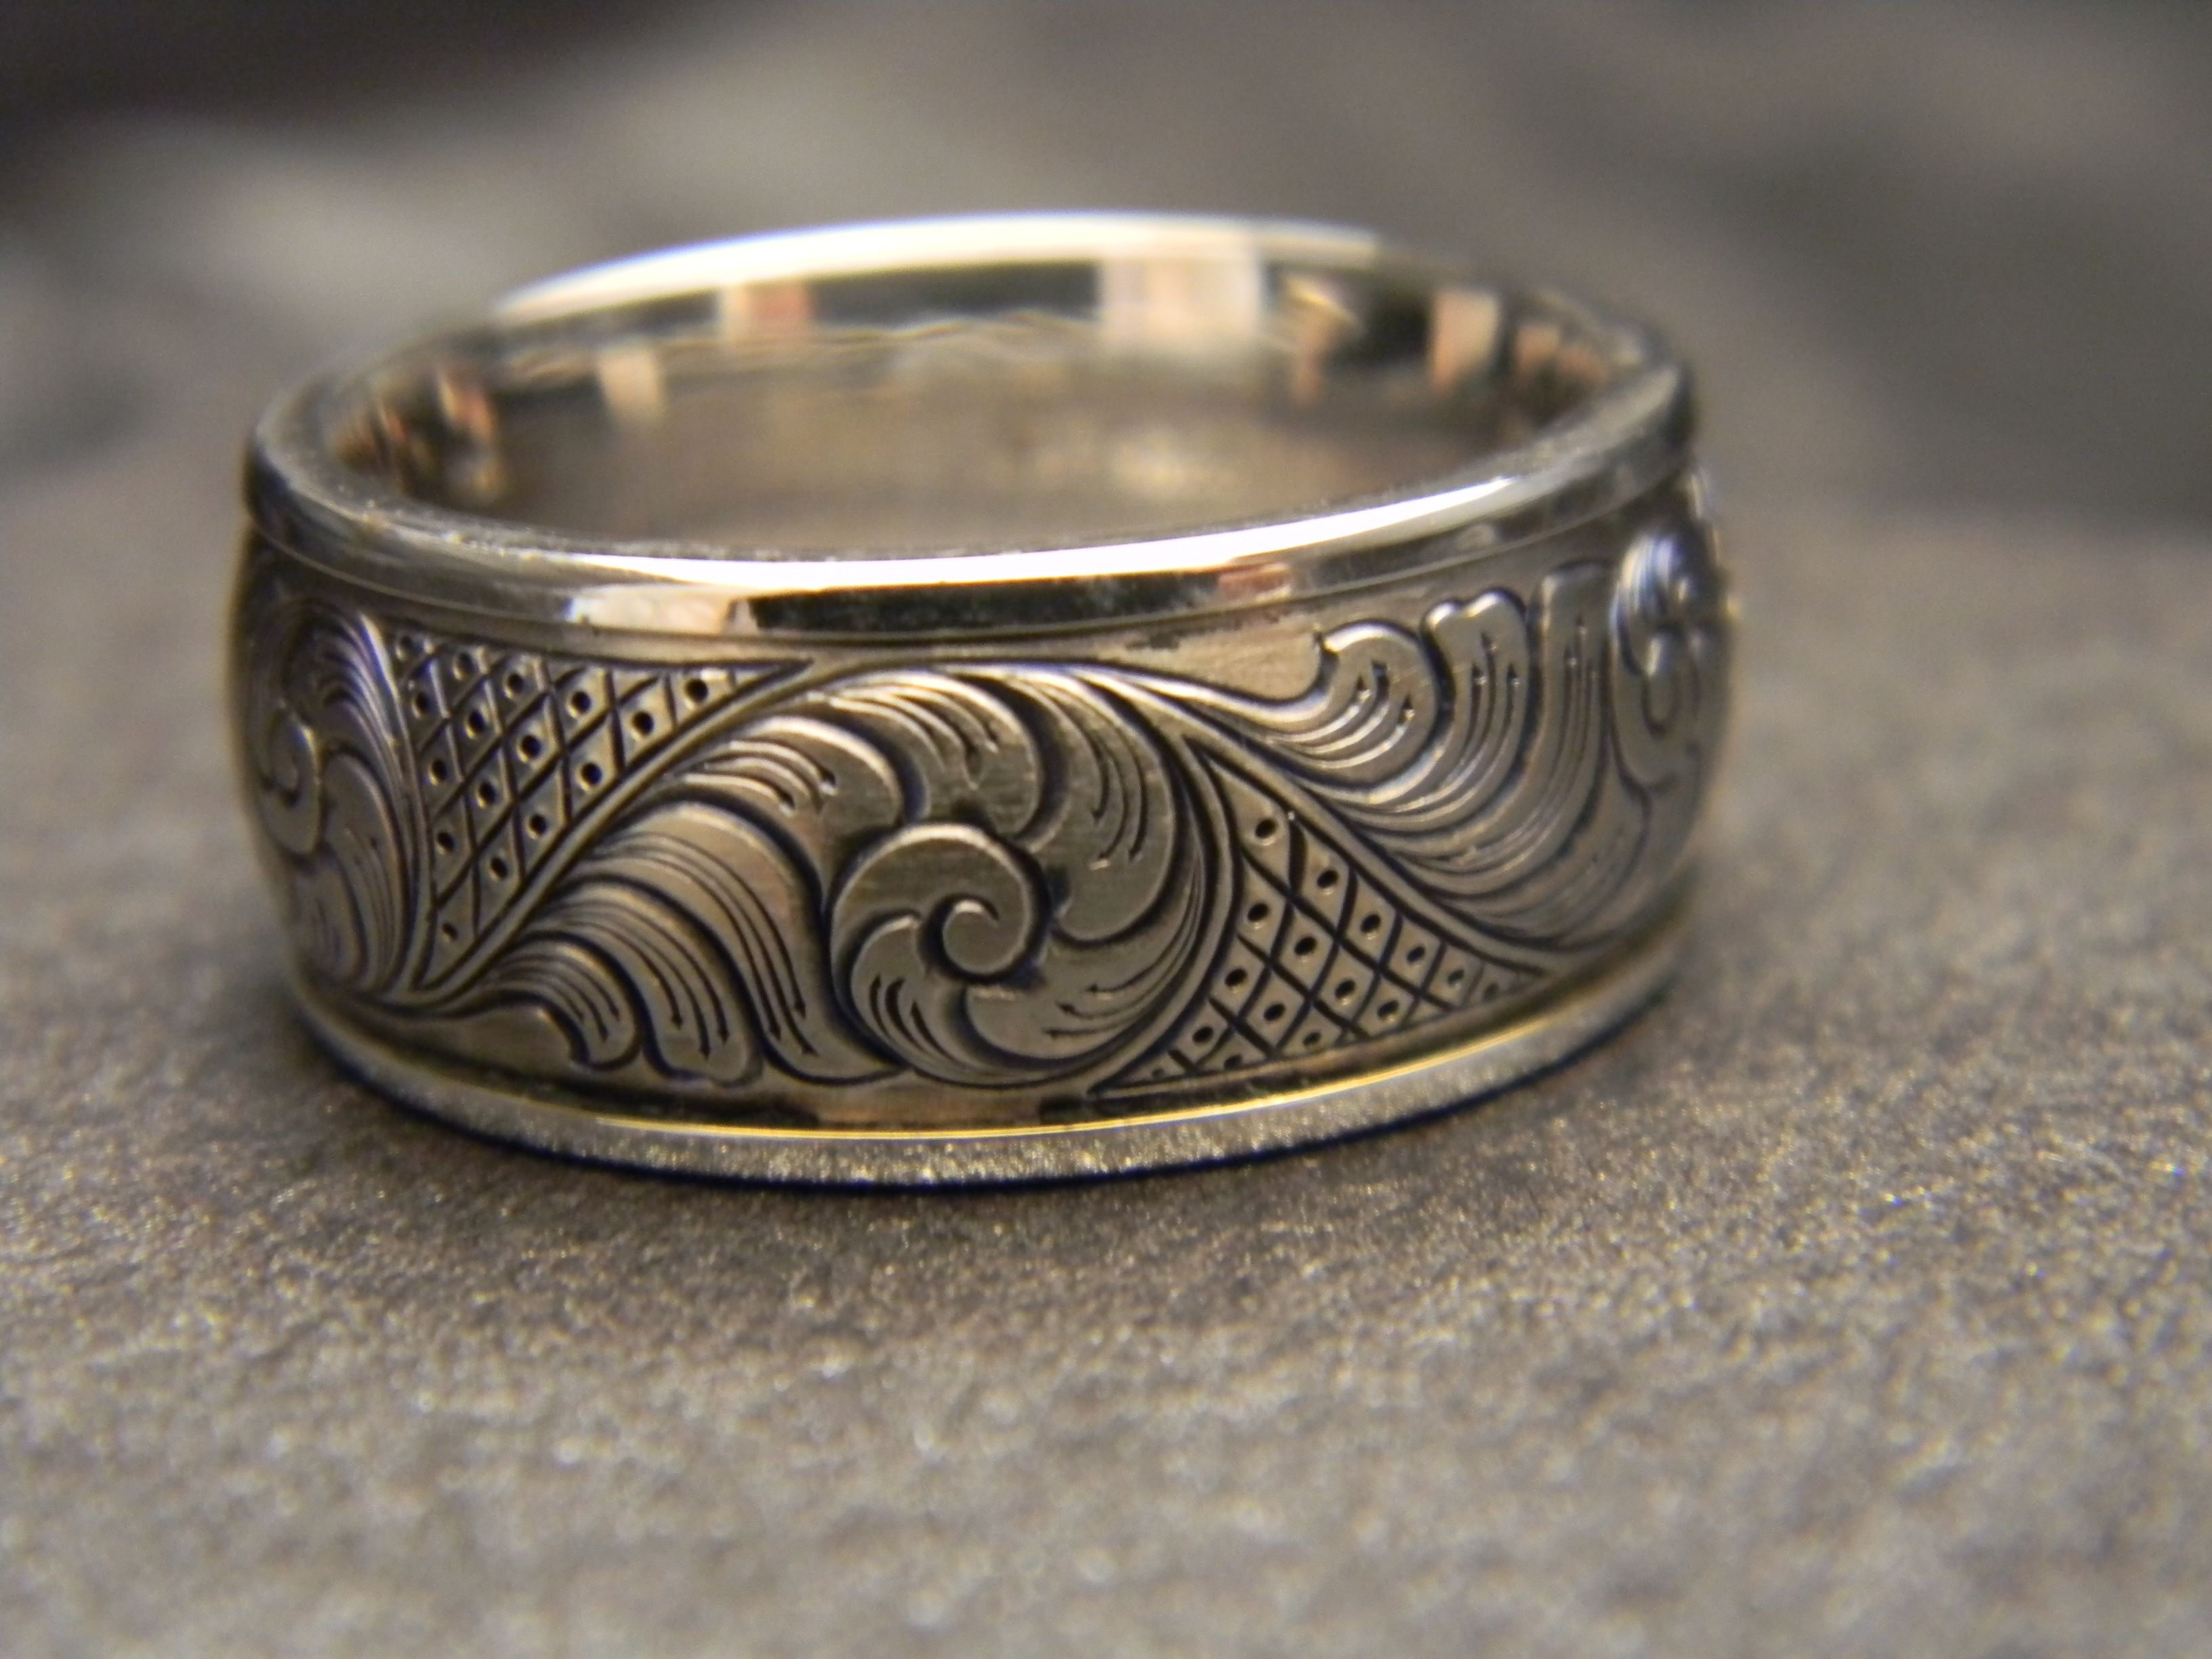 plus mens rings ring irish nordic sterling owl silver pin celtic band wedding